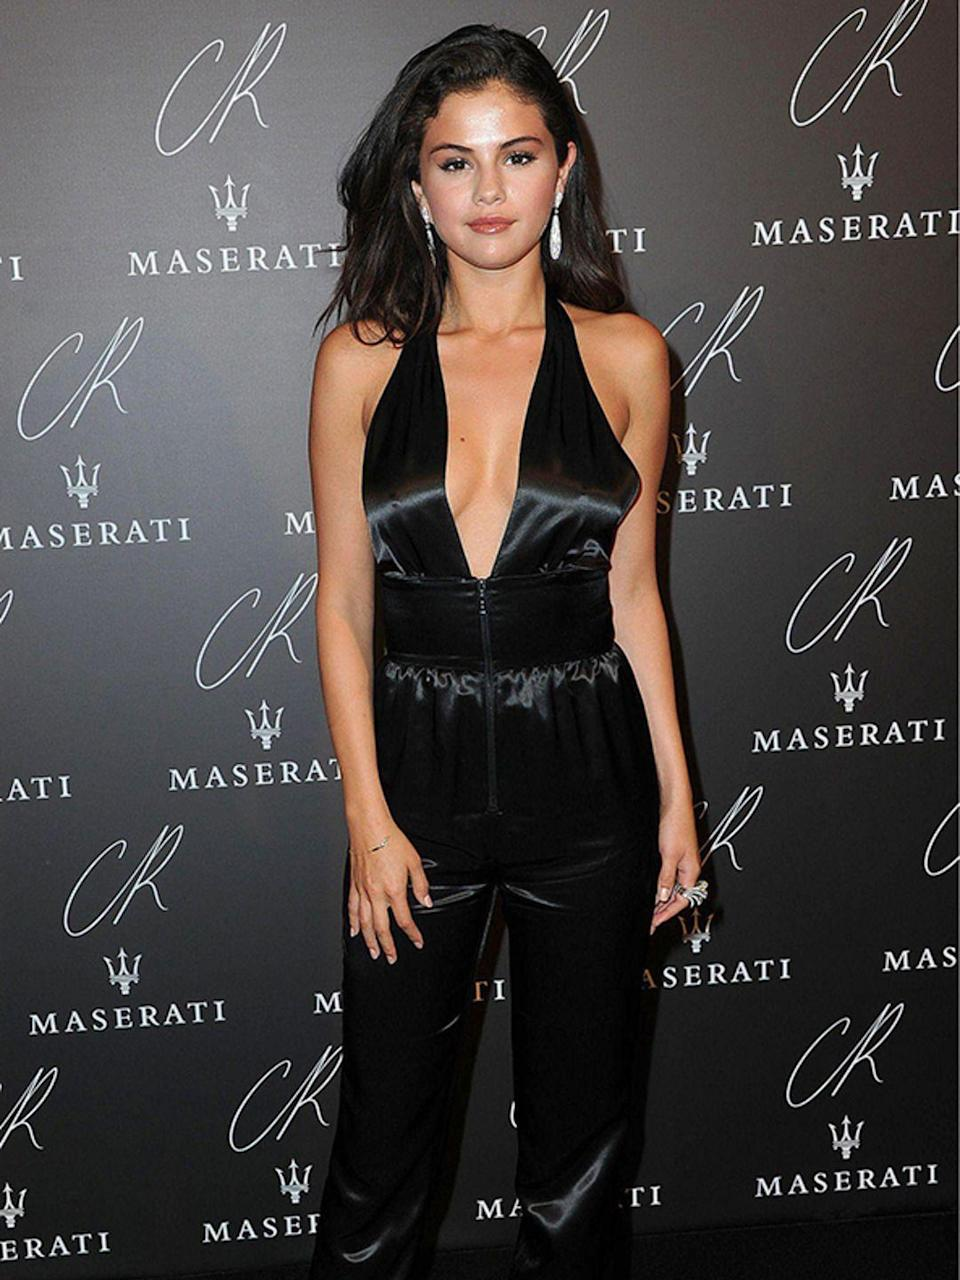 <p>Selena Gomez wearing Louis Vuitton at the CR Fashion Book Issue No.5 Launch in France, September 2014.</p>